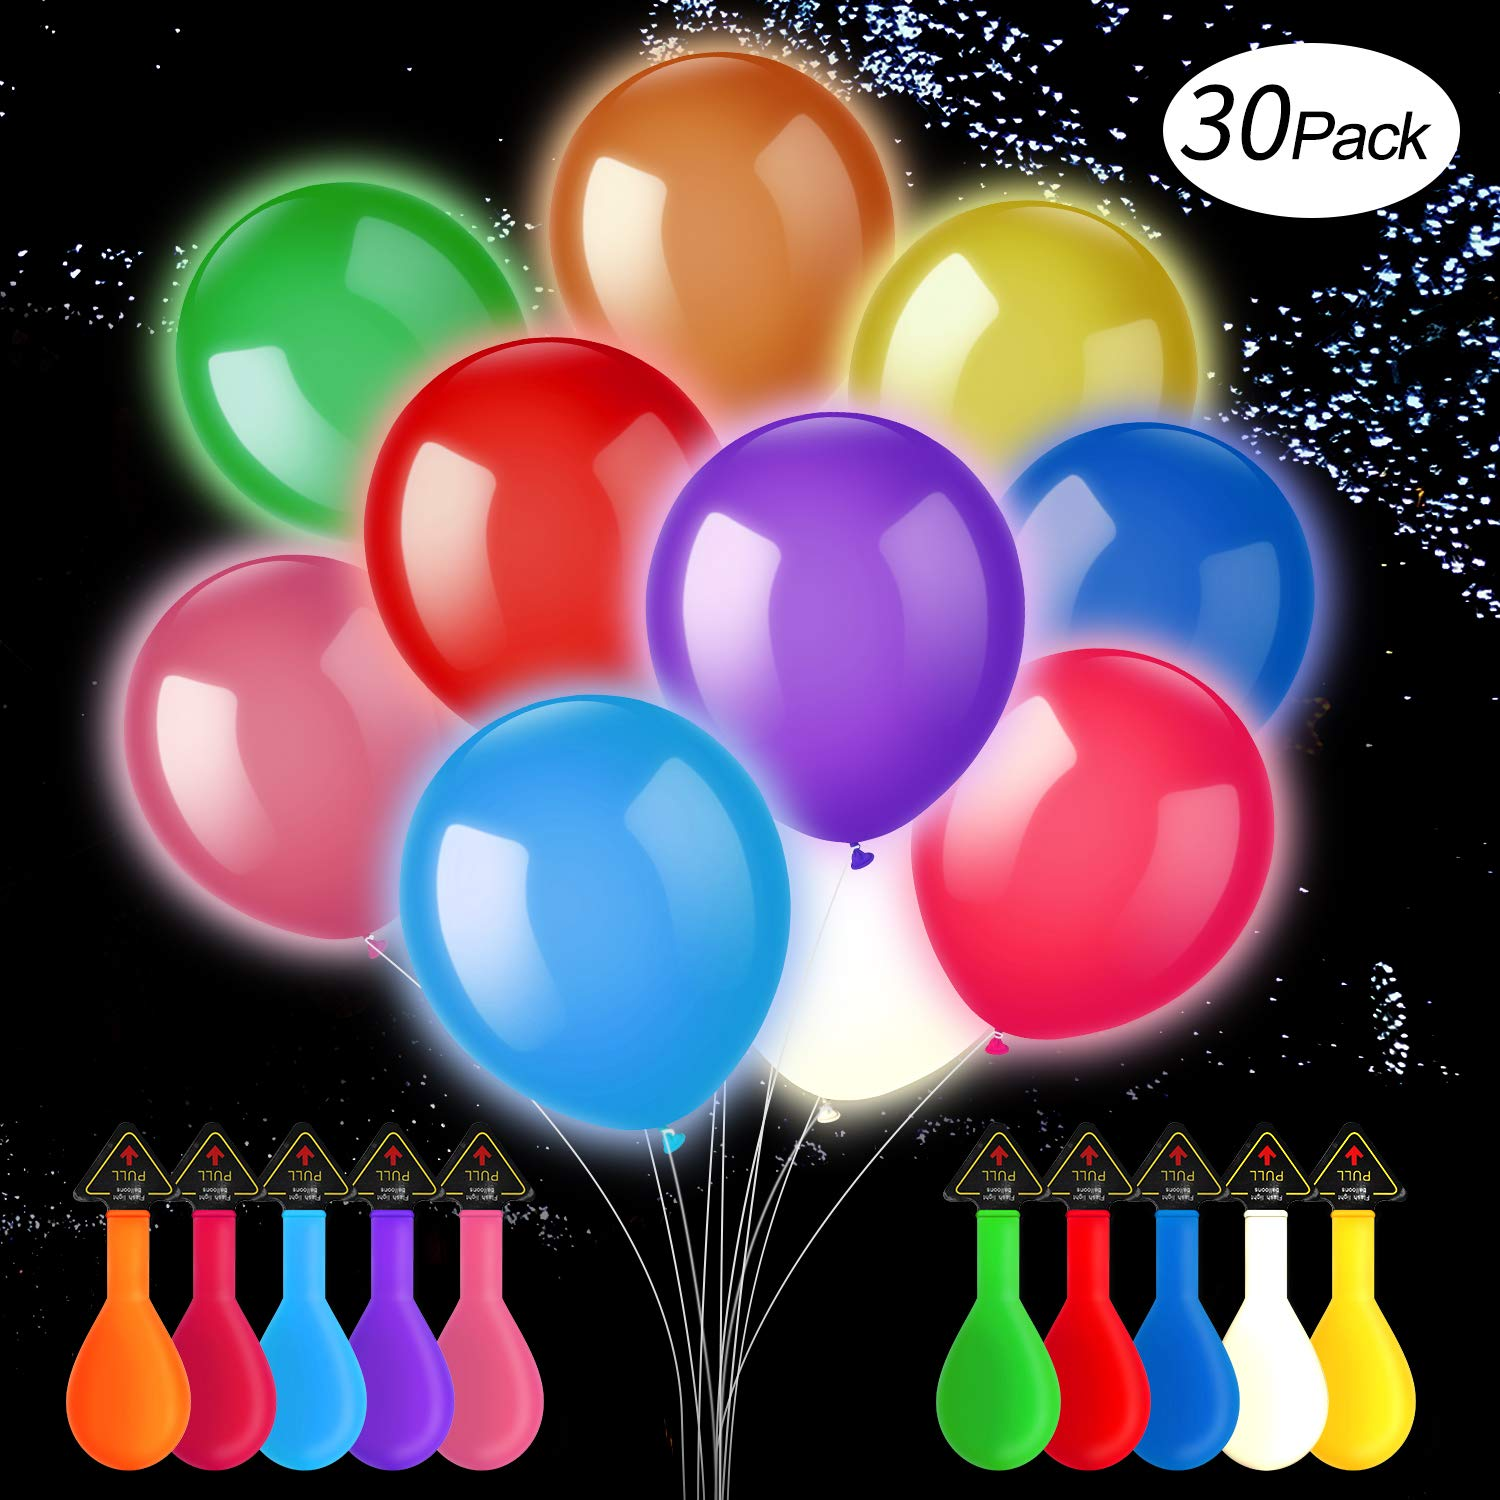 LED Balloons, Light Up Balloons-10 Colors, Flashing Lasts 12-24 Hours, Ideal For Bonfire Birthday Party And Decorations (30 Pack)